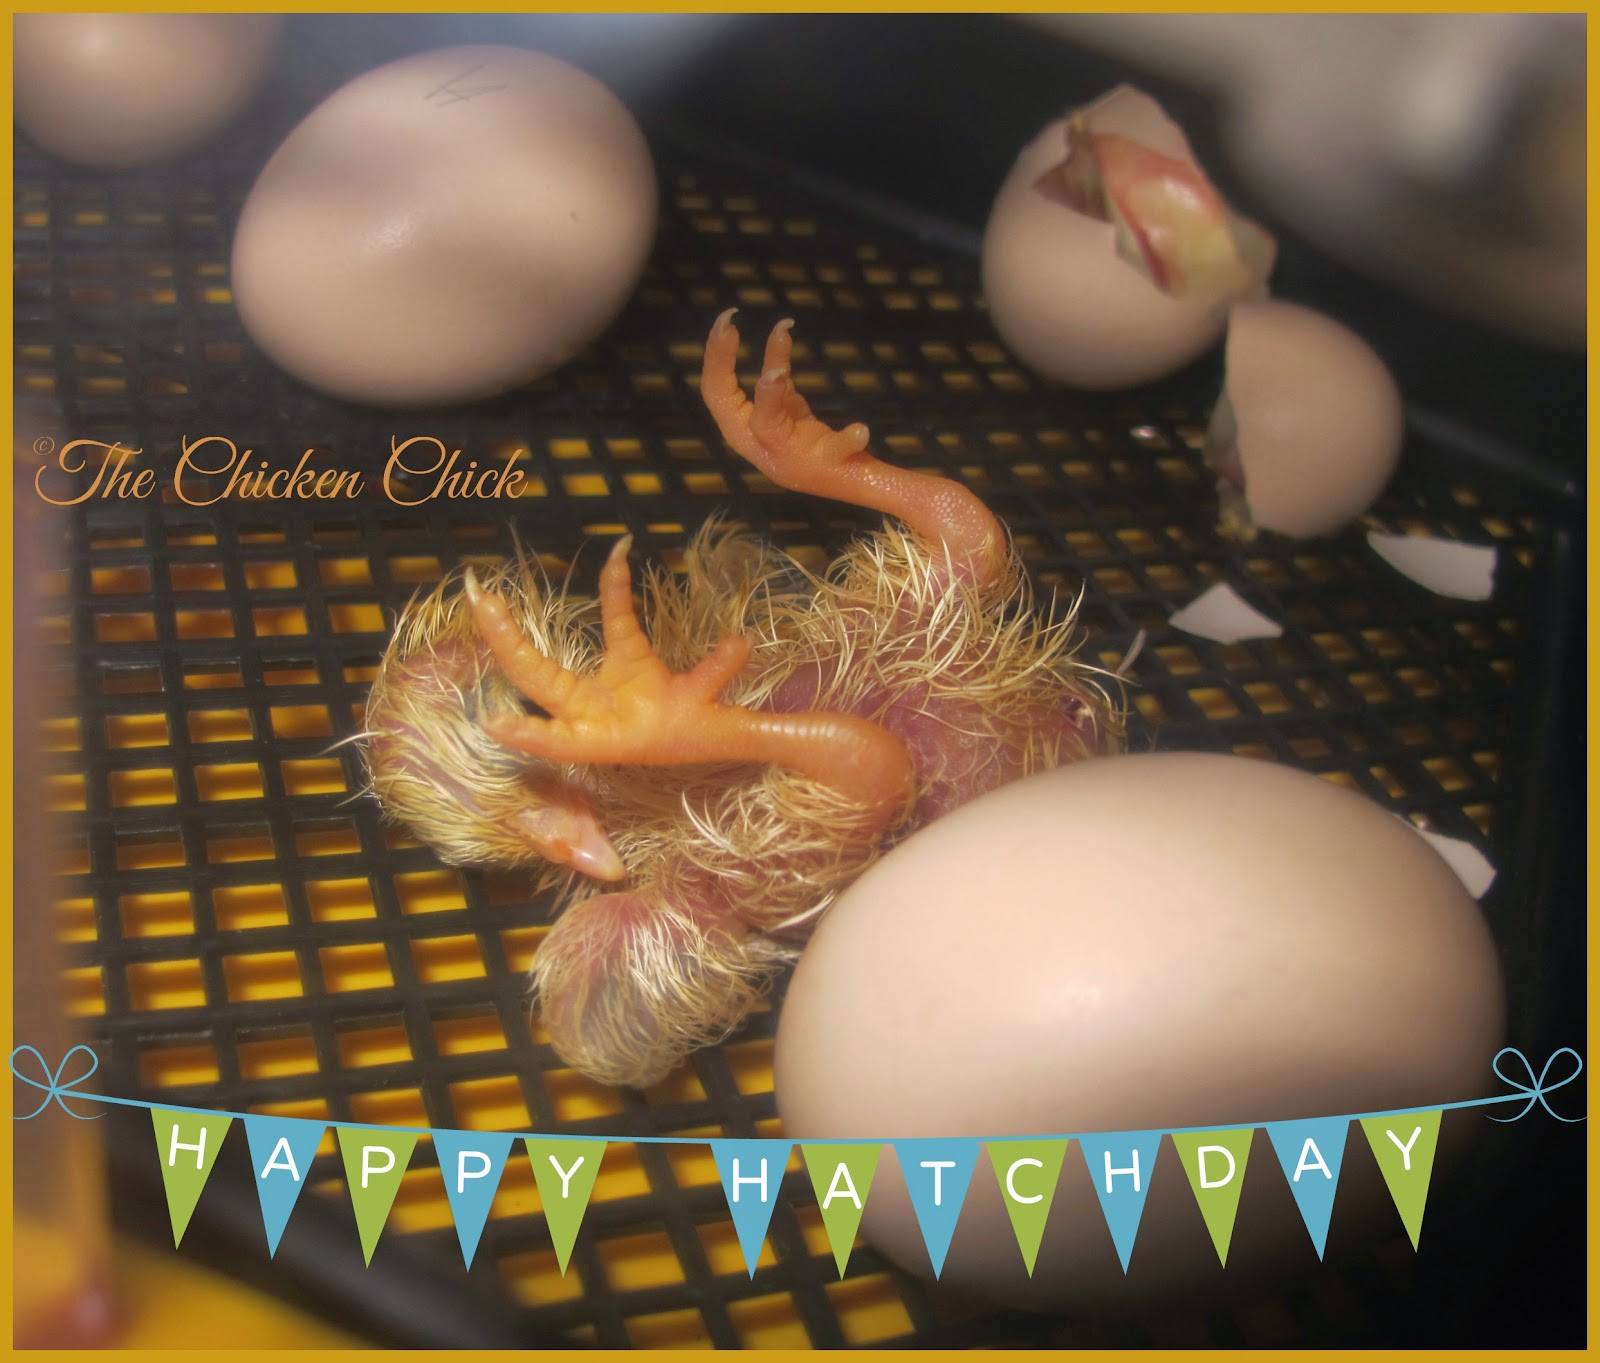 Serama chick hatching